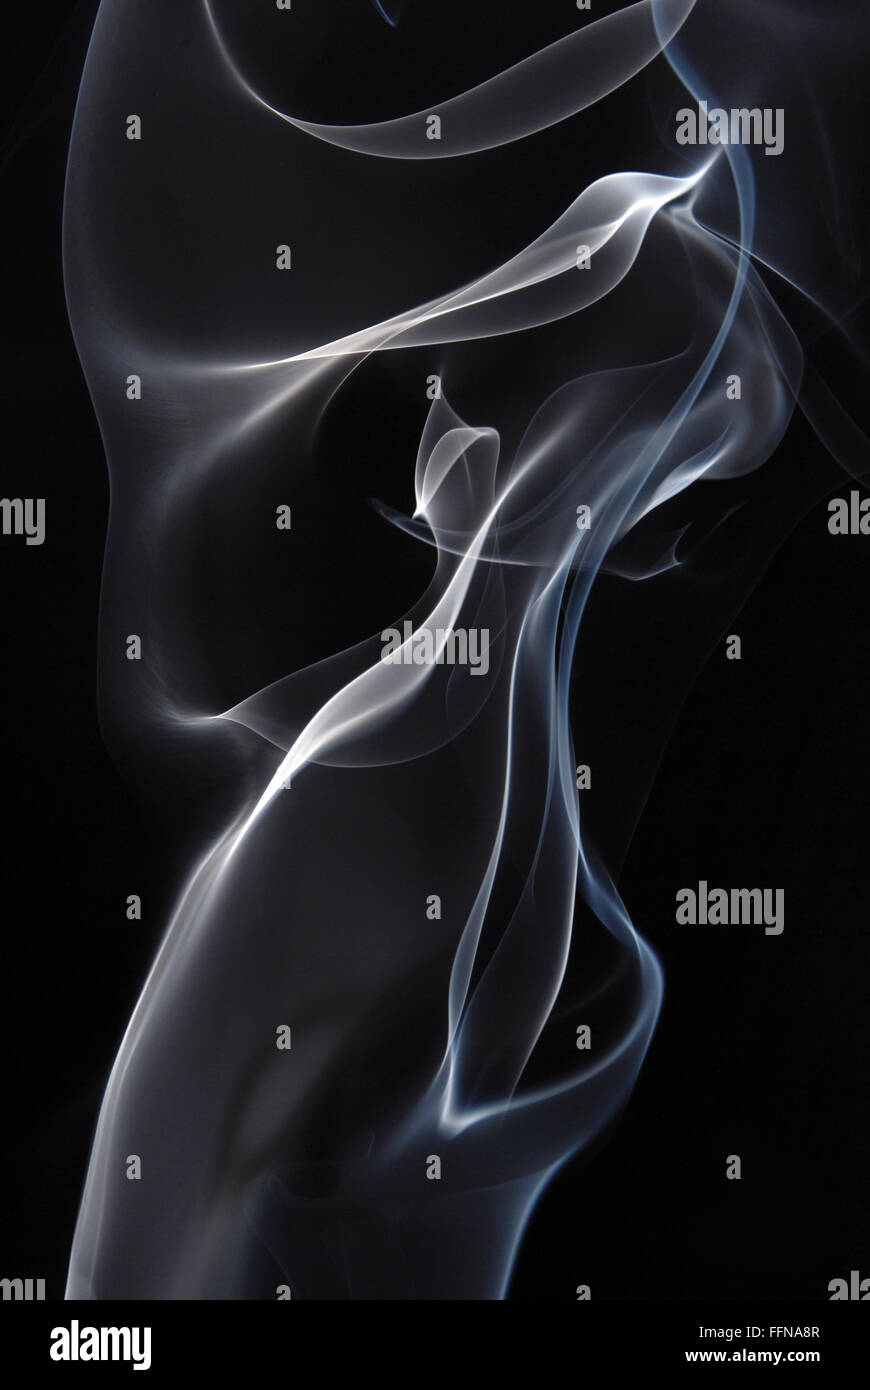 smoke curly lines background - Stock Image